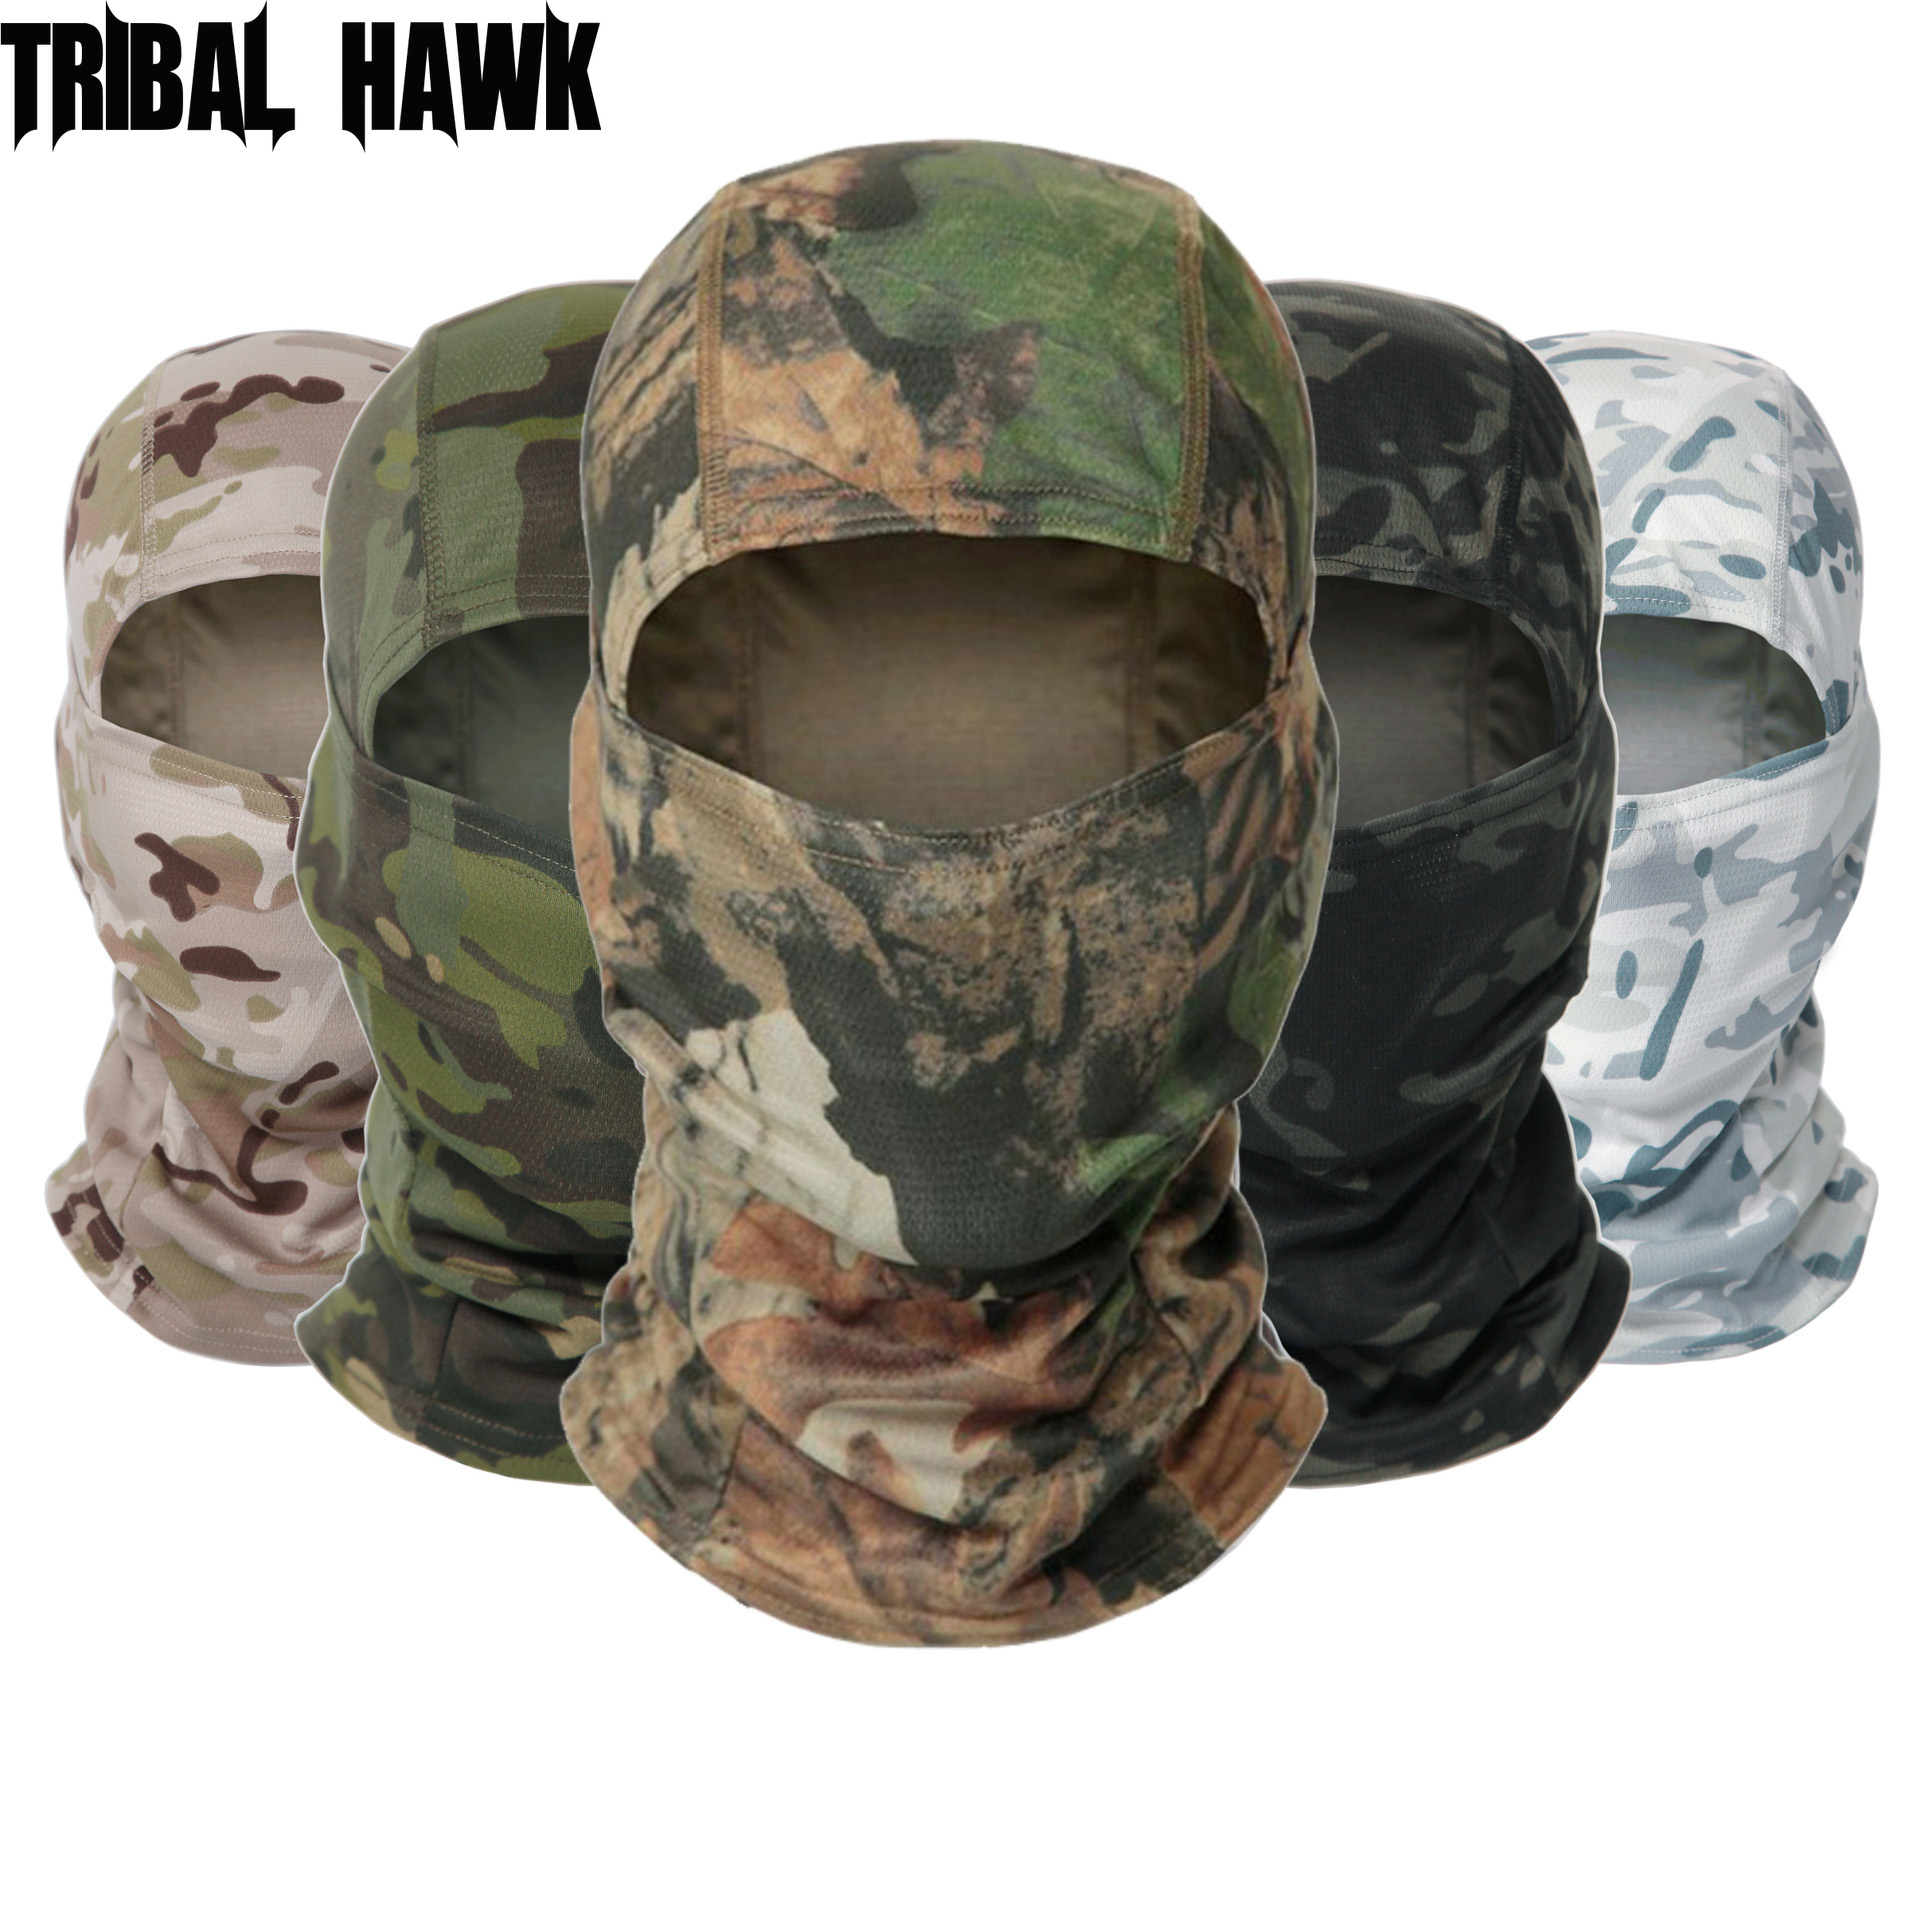 Outdoor Tactical Balaclava Full Face Mask Bicycle Cycling Ski Snowboard Cover Army Military Hat Fishing Hunting Camouflage Cap